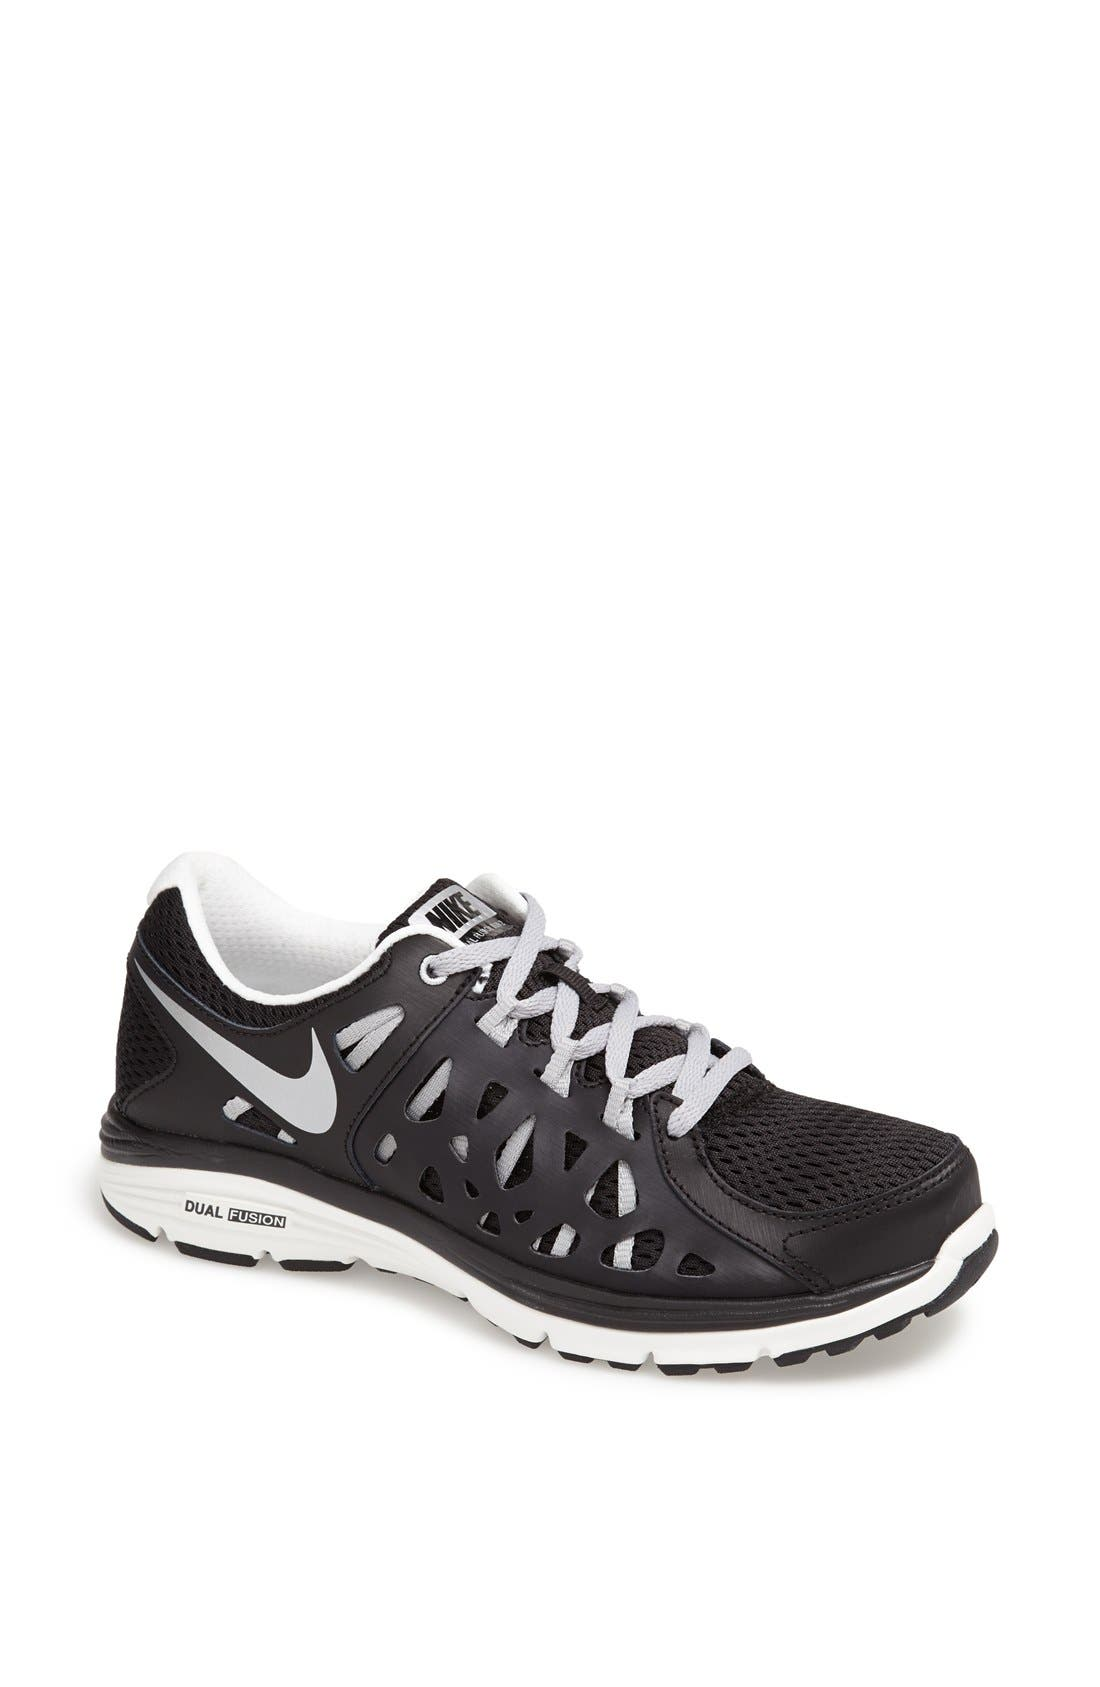 Alternate Image 1 Selected - Nike 'Dual Fusion 2.0' Running Shoe (Women)